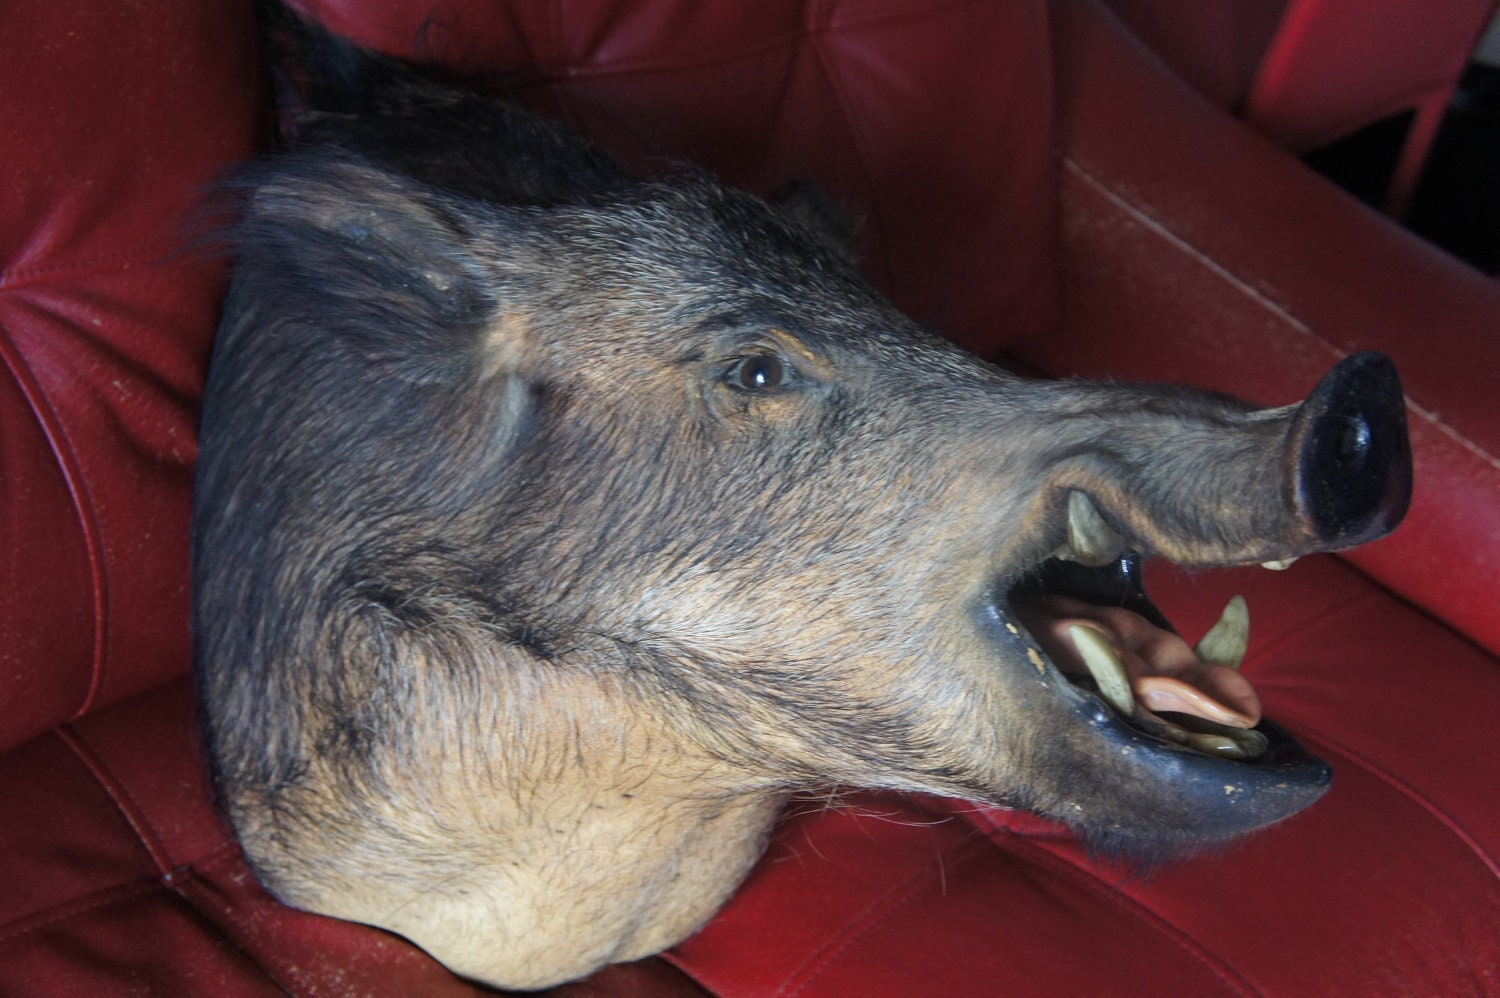 Boar Head Mounts http://www.etsy.com/listing/98762993/wild-boar-pig-warthog-hunt-head-shoulder